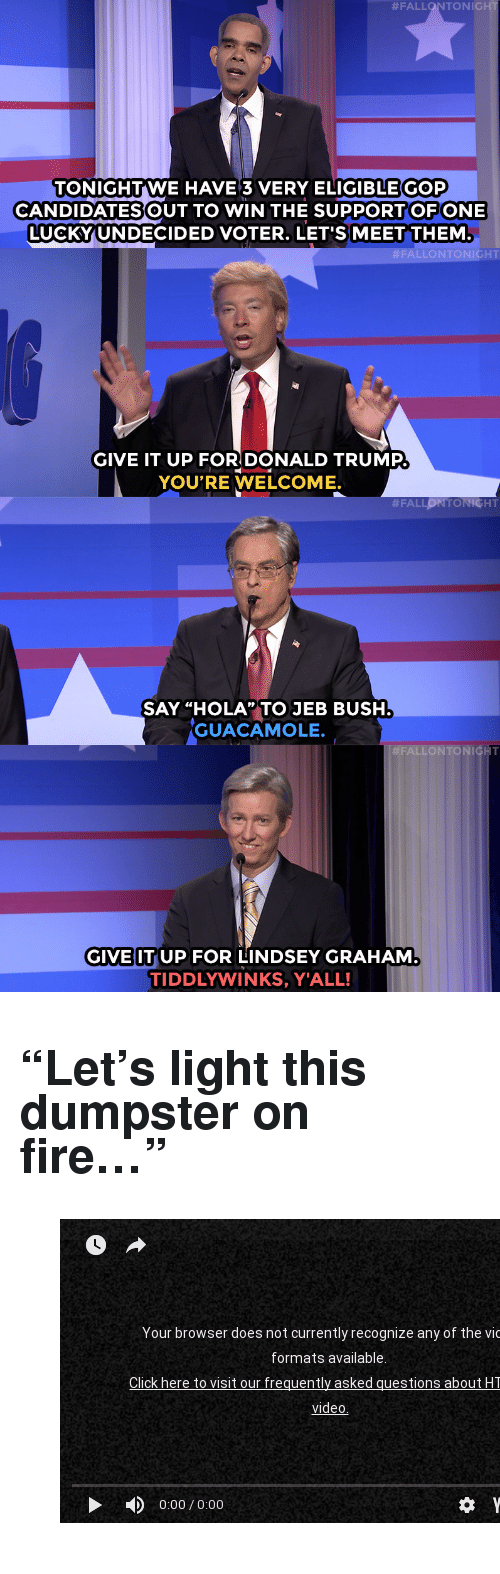 "Donald Trump, Fall, and Fire:  #FALL TONIC  TONIGHTWE HAVE3 VERY ELIGIBLEGOP  CANDIDATESOUT TO WIN THE SUPPORTOF ONE  LUCKYUNDECIDED VOTER. LET'S MEET THEM  ALLONTONIGHT  GIVE IT UP FOR DONALD TRUMP  YOU'RE WELCOME.  SAY ""HOLA,TO JEB BUSH  GUACAMOLE.  FALLON TONI  GIVE ITUP FOR LINDSEY GRAHAM  TIDDLYWINKS, Y'ALL! <h2><b>""Let's light this dumpster on fire&hellip;"" </b></h2><figure class=""tmblr-embed tmblr-full"" data-provider=""youtube"" data-orig-width=""540"" data-orig-height=""304"" data-url=""https%3A%2F%2Fwww.youtube.com%2Fwatch%3Fv%3DPoyClMUrUSs""><iframe width=""540"" height=""304"" id=""youtube_iframe"" src=""https://www.youtube.com/embed/PoyClMUrUSs?feature=oembed&amp;enablejsapi=1&amp;origin=https://safe.txmblr.com&amp;wmode=opaque"" frameborder=""0"" allowfullscreen=""""></iframe></figure>"